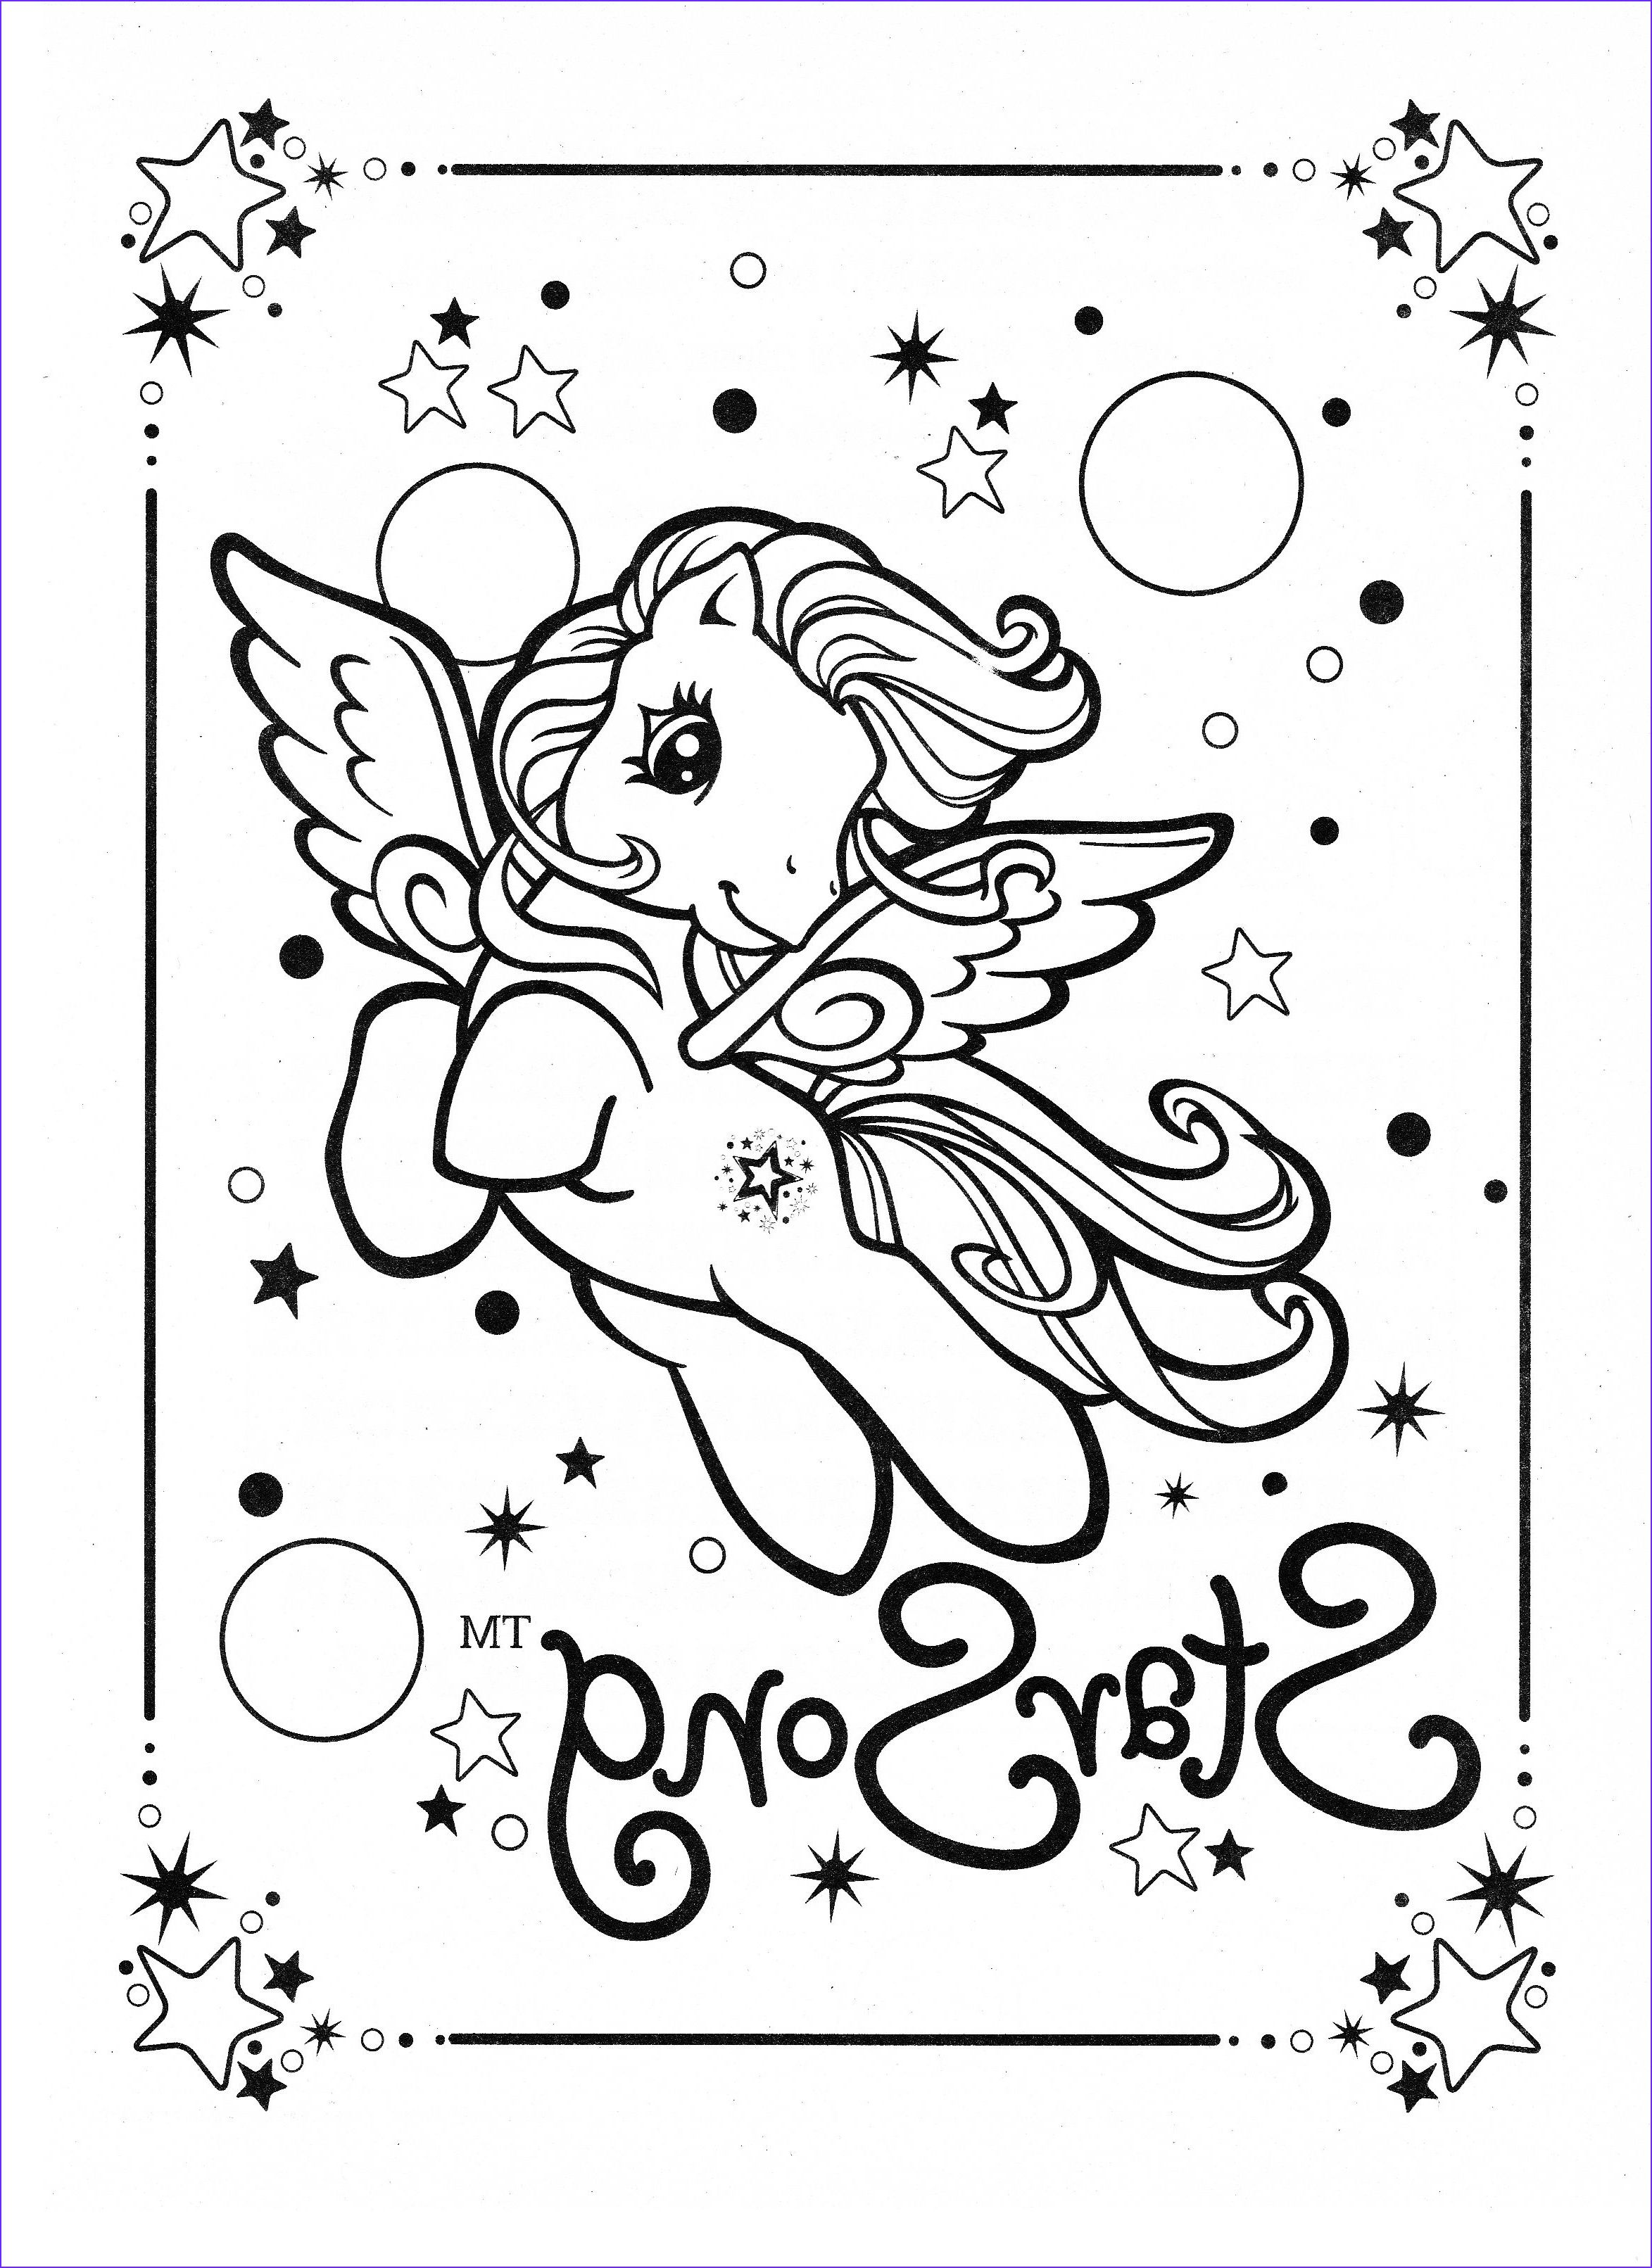 15 Luxury Mlp Coloring Books Gallery In 2020 Coloring Books My Little Pony Coloring Coloring Pages [ 3223 x 2347 Pixel ]